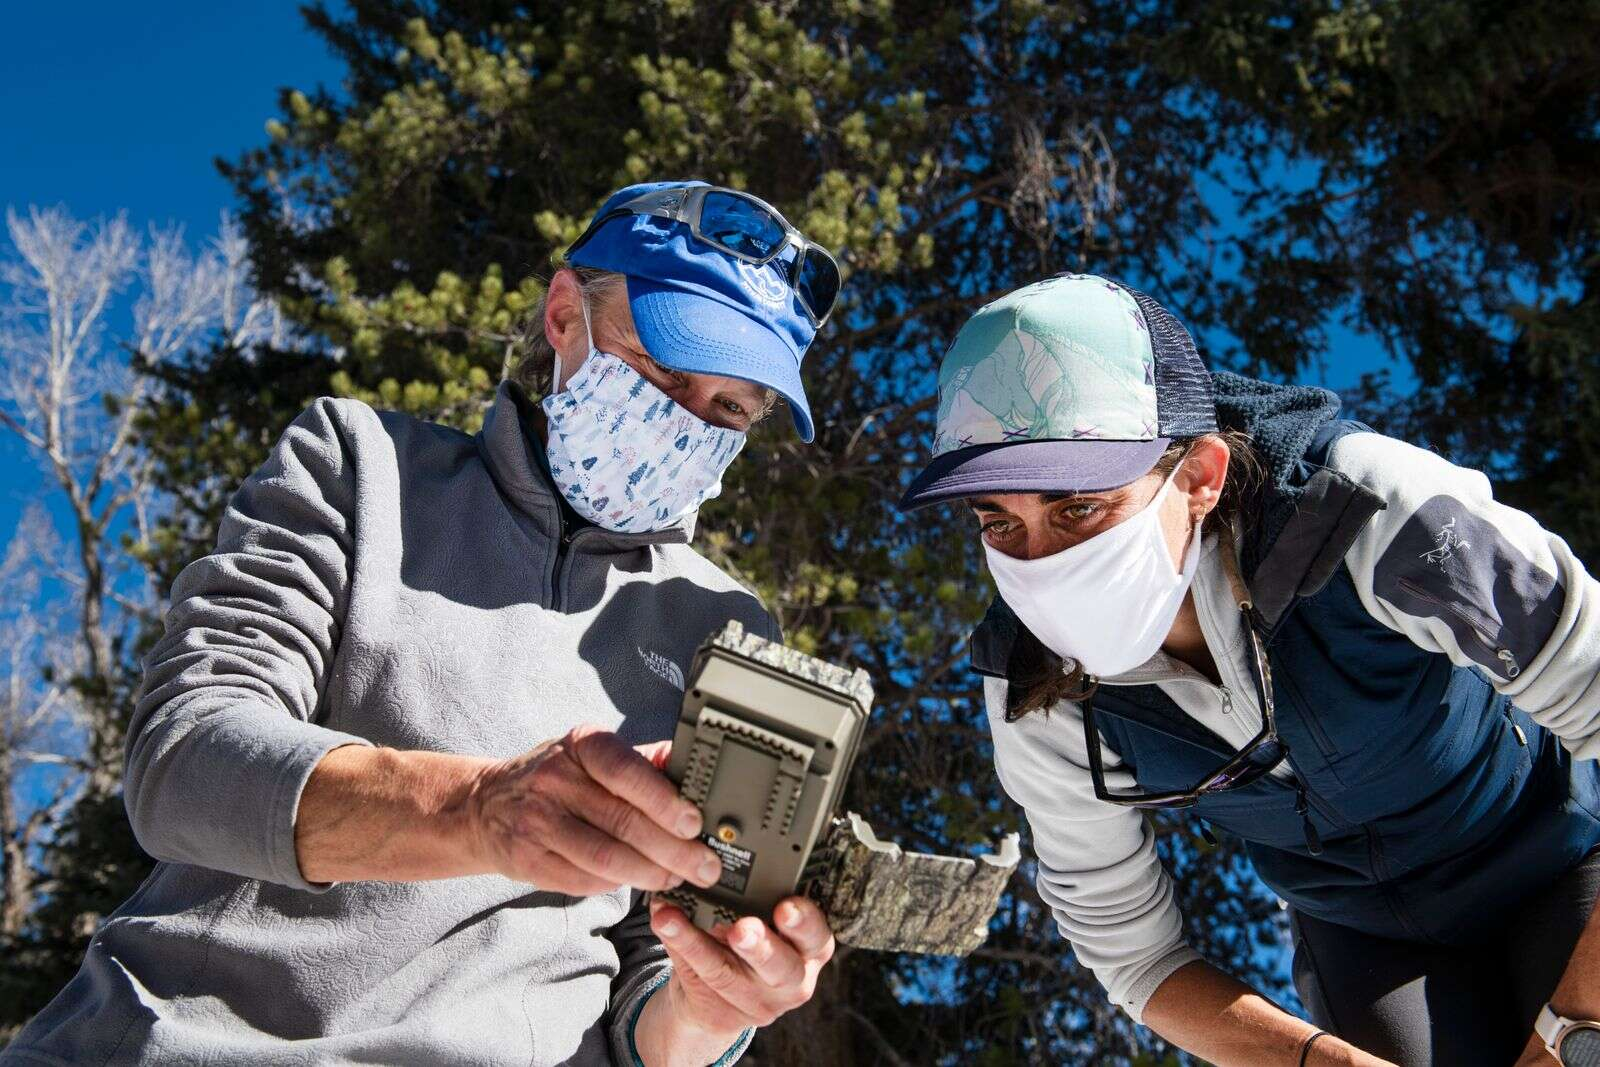 Pitkin County Open Space & Trails' Janet Urquhart shows Liza Mitchell how to work the camera that the two set out to monitor dam activity at Northstar Nature Preserve on Wednesday, Dec. 9, 2020. (Kelsey Brunner/The Aspen Times)